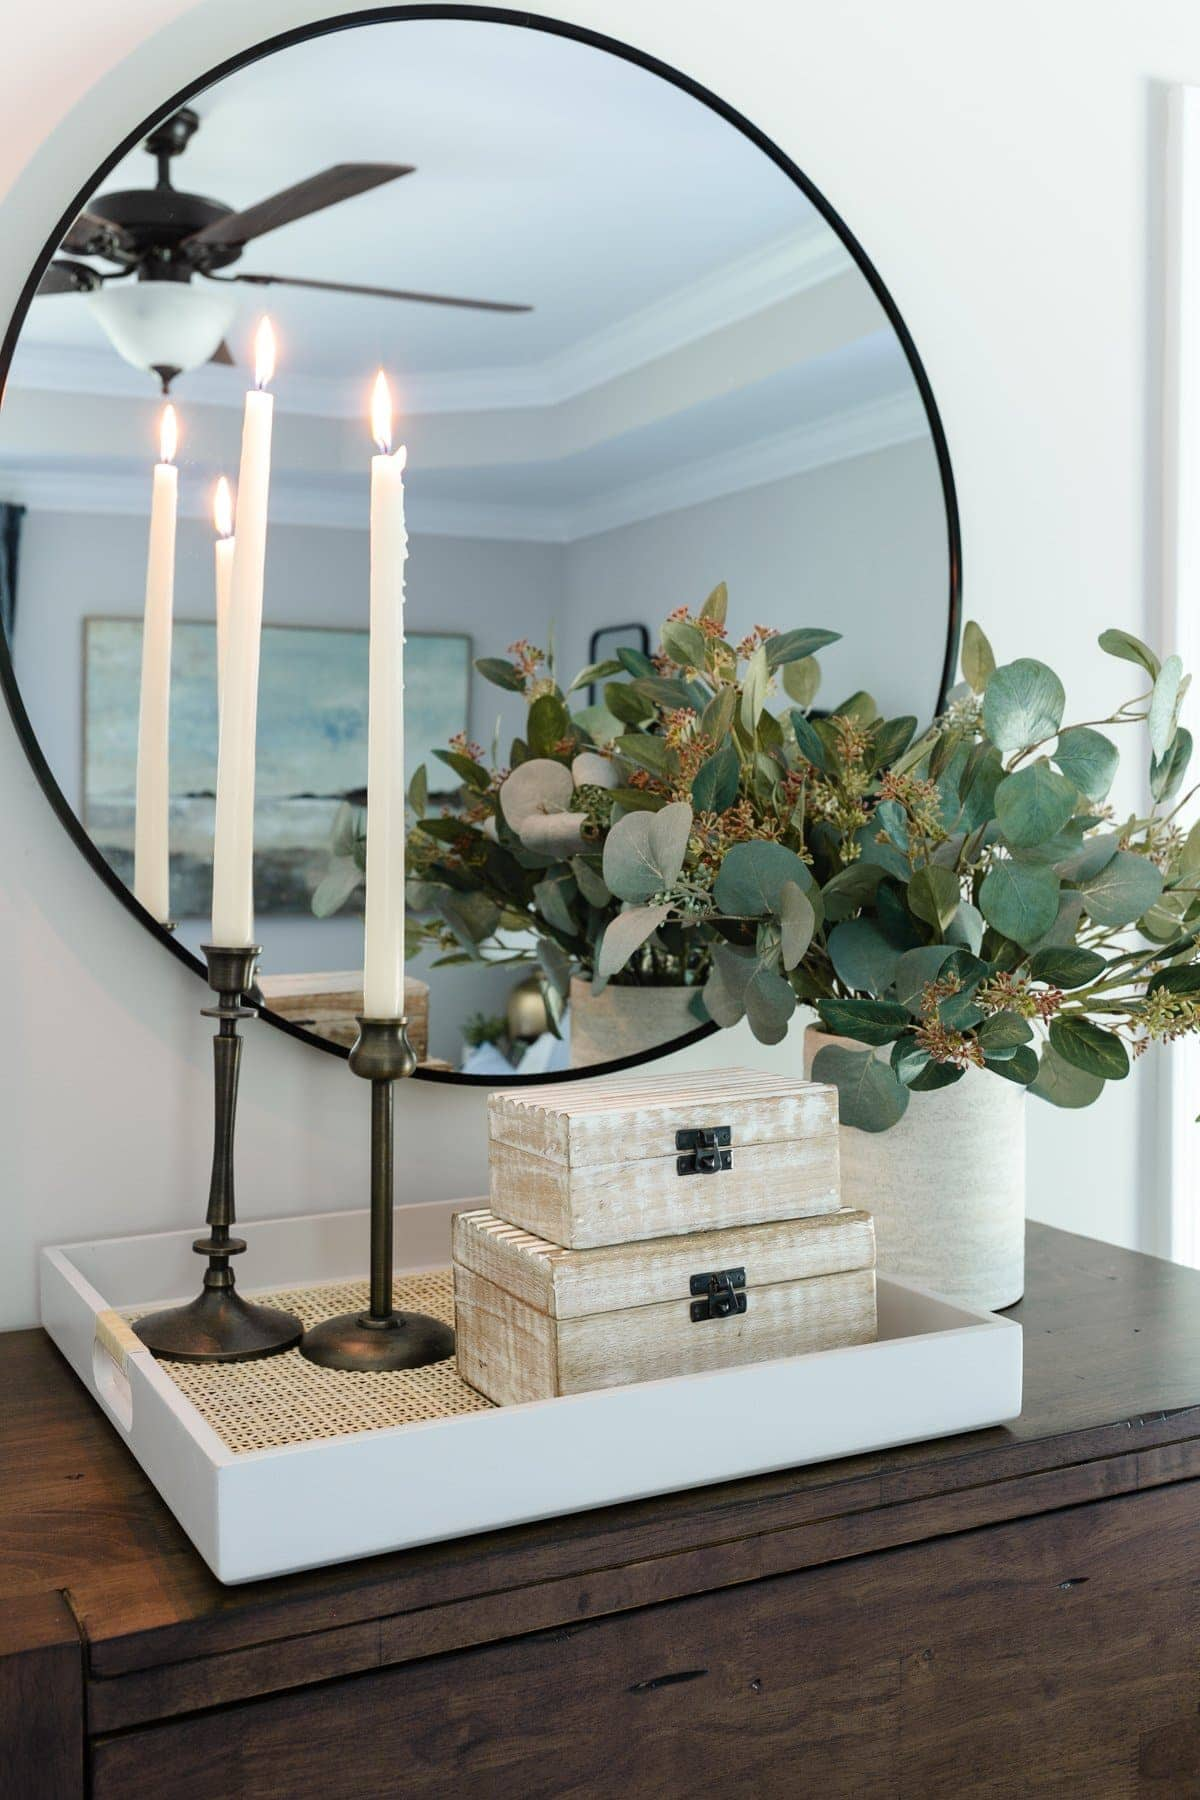 thrift store home decor featuring candle holders and decorative boxes